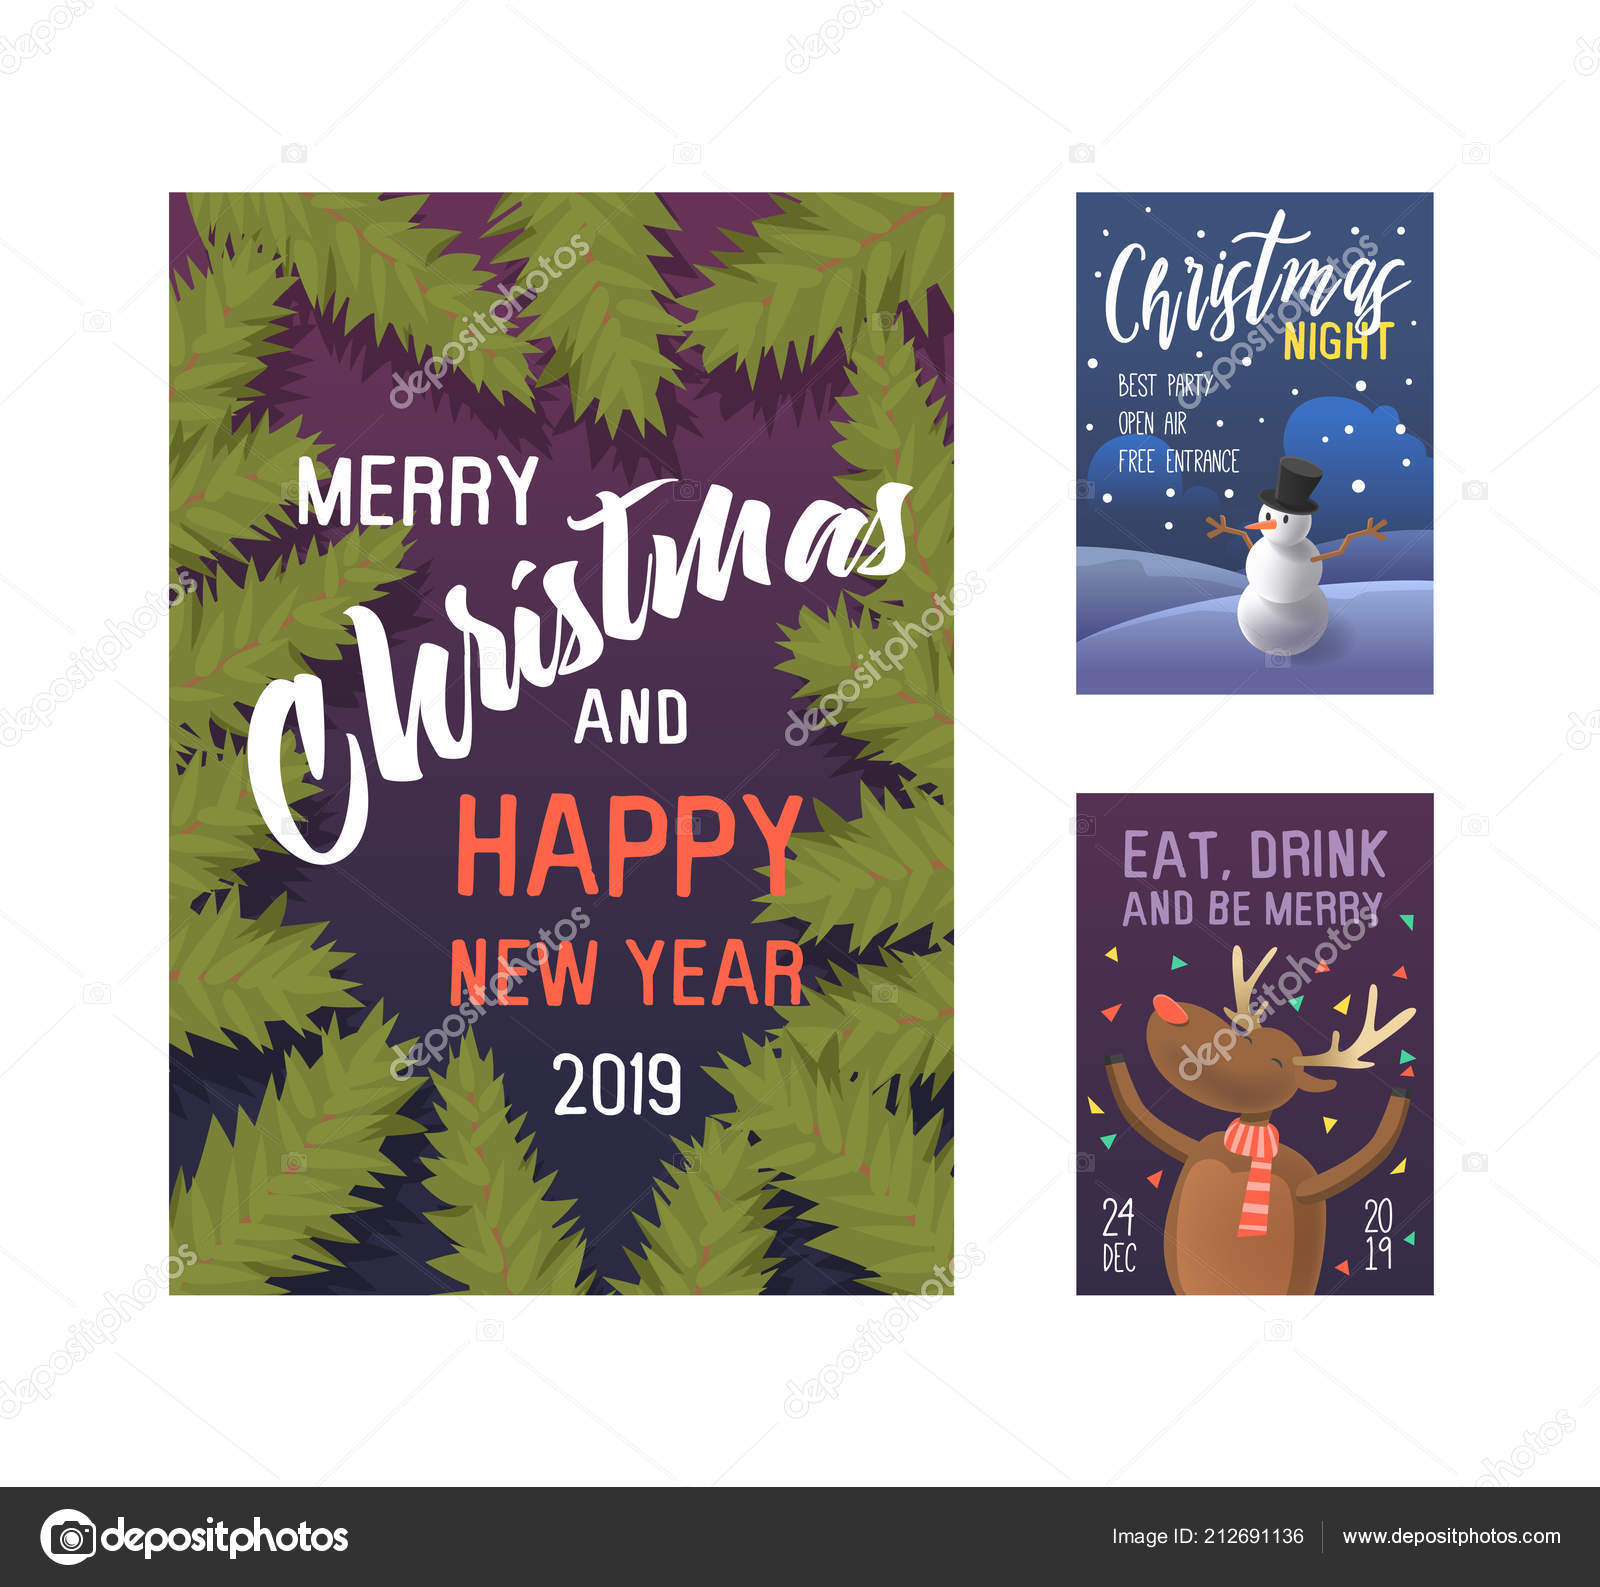 merry christmas 2019 party poster invitation flyer template xmas